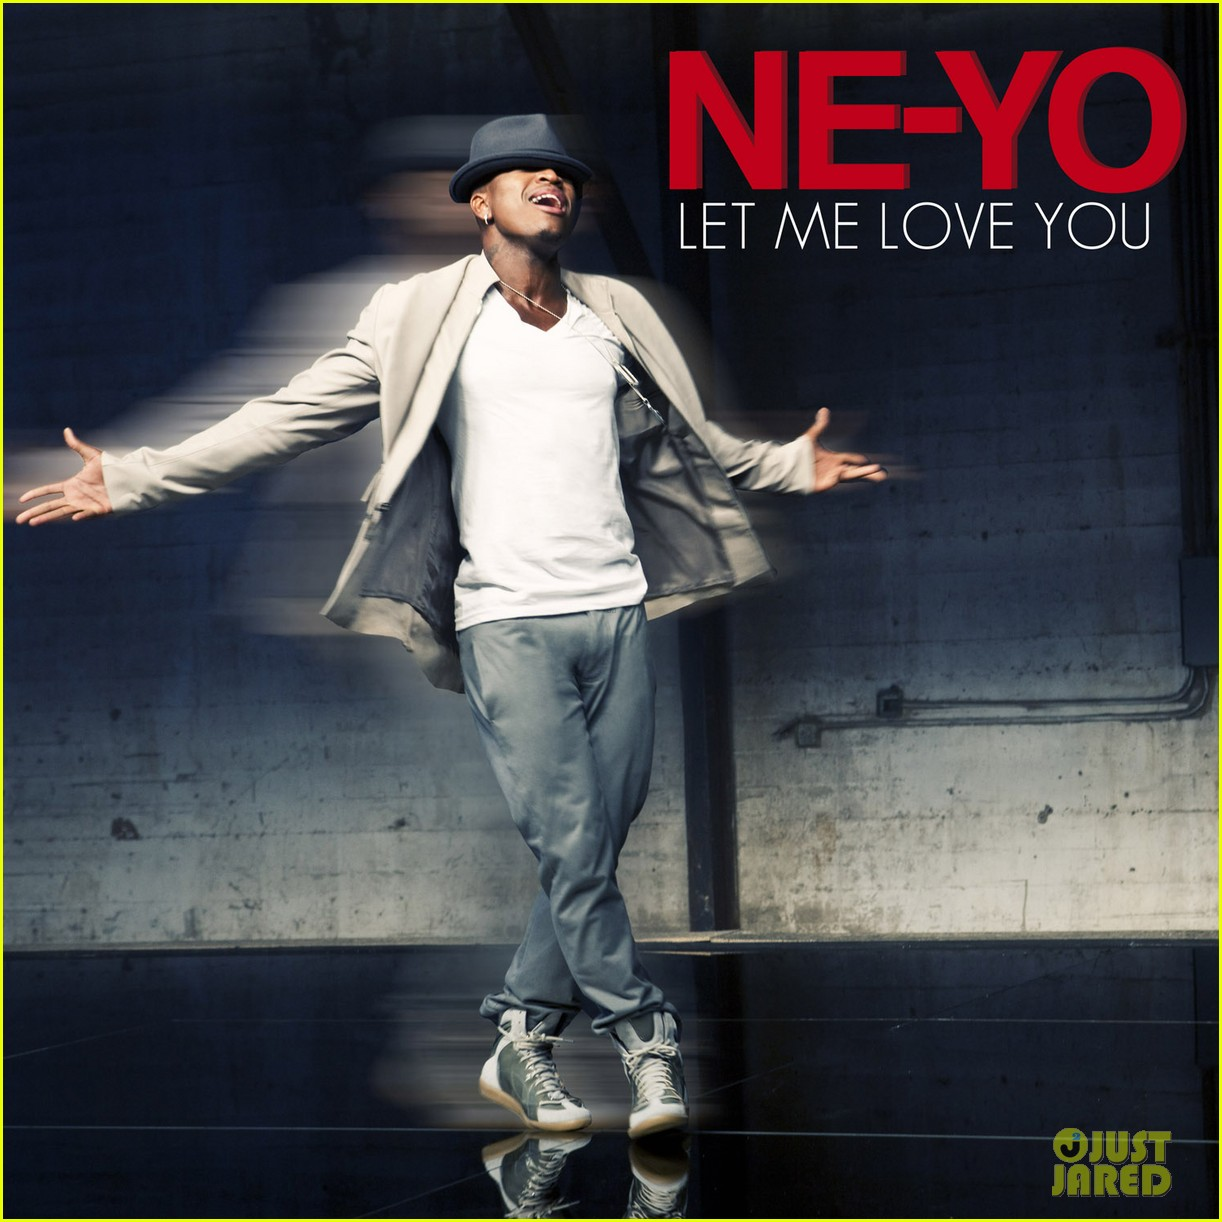 neyo jj music monday 02.